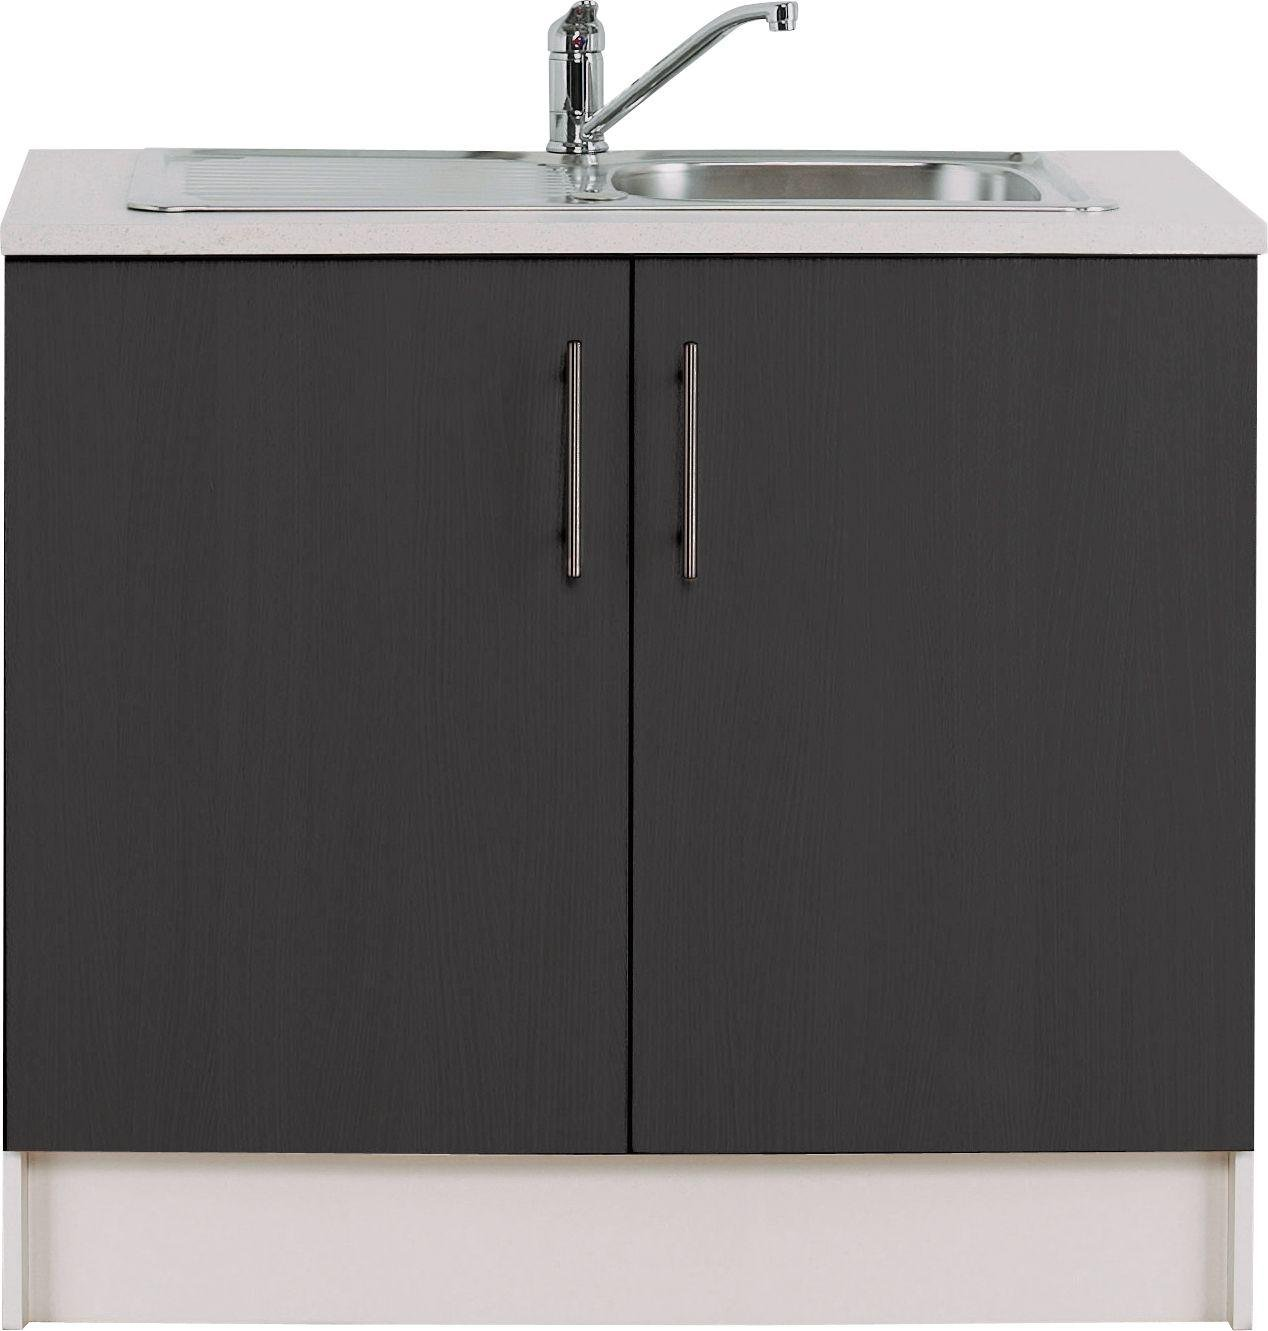 buy athina 1000mm stainless steel kitchen sink unit